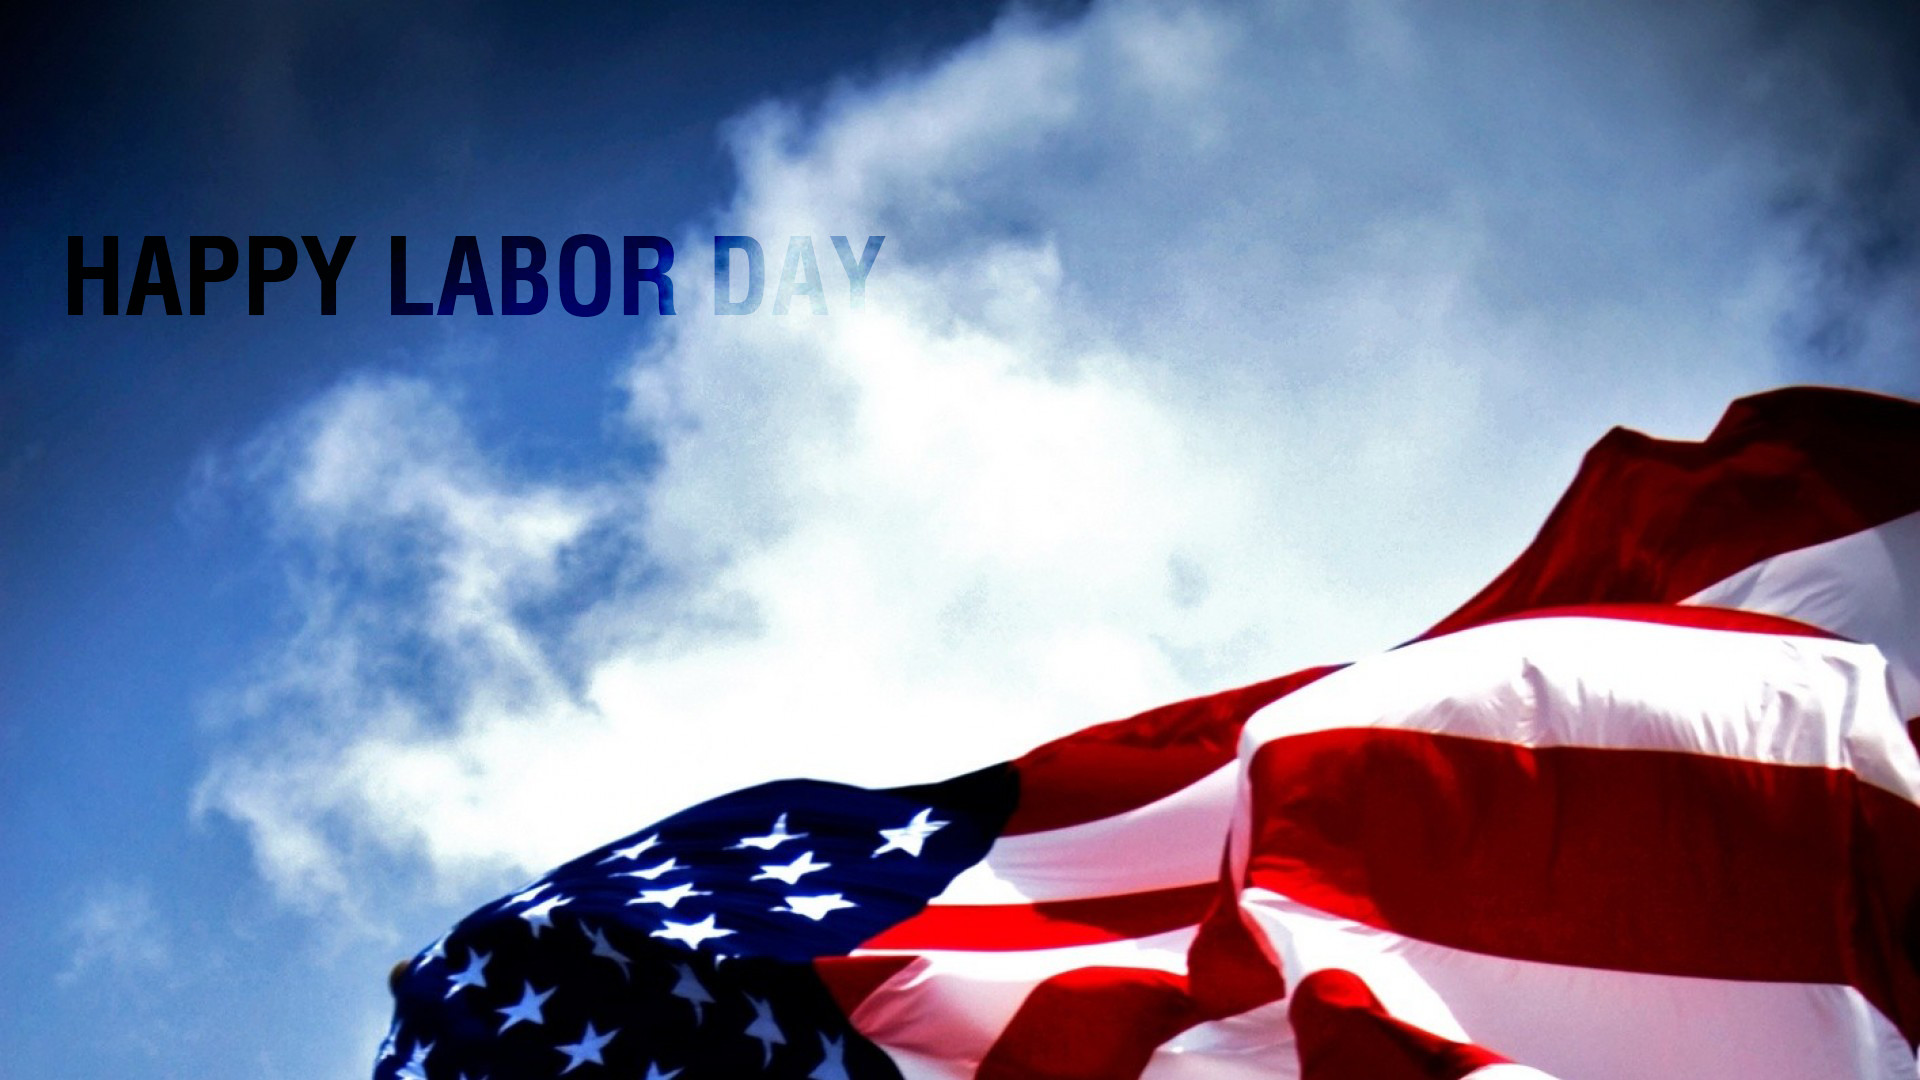 1920x1080 Happy Labor Day HD Wallpaper Free Download